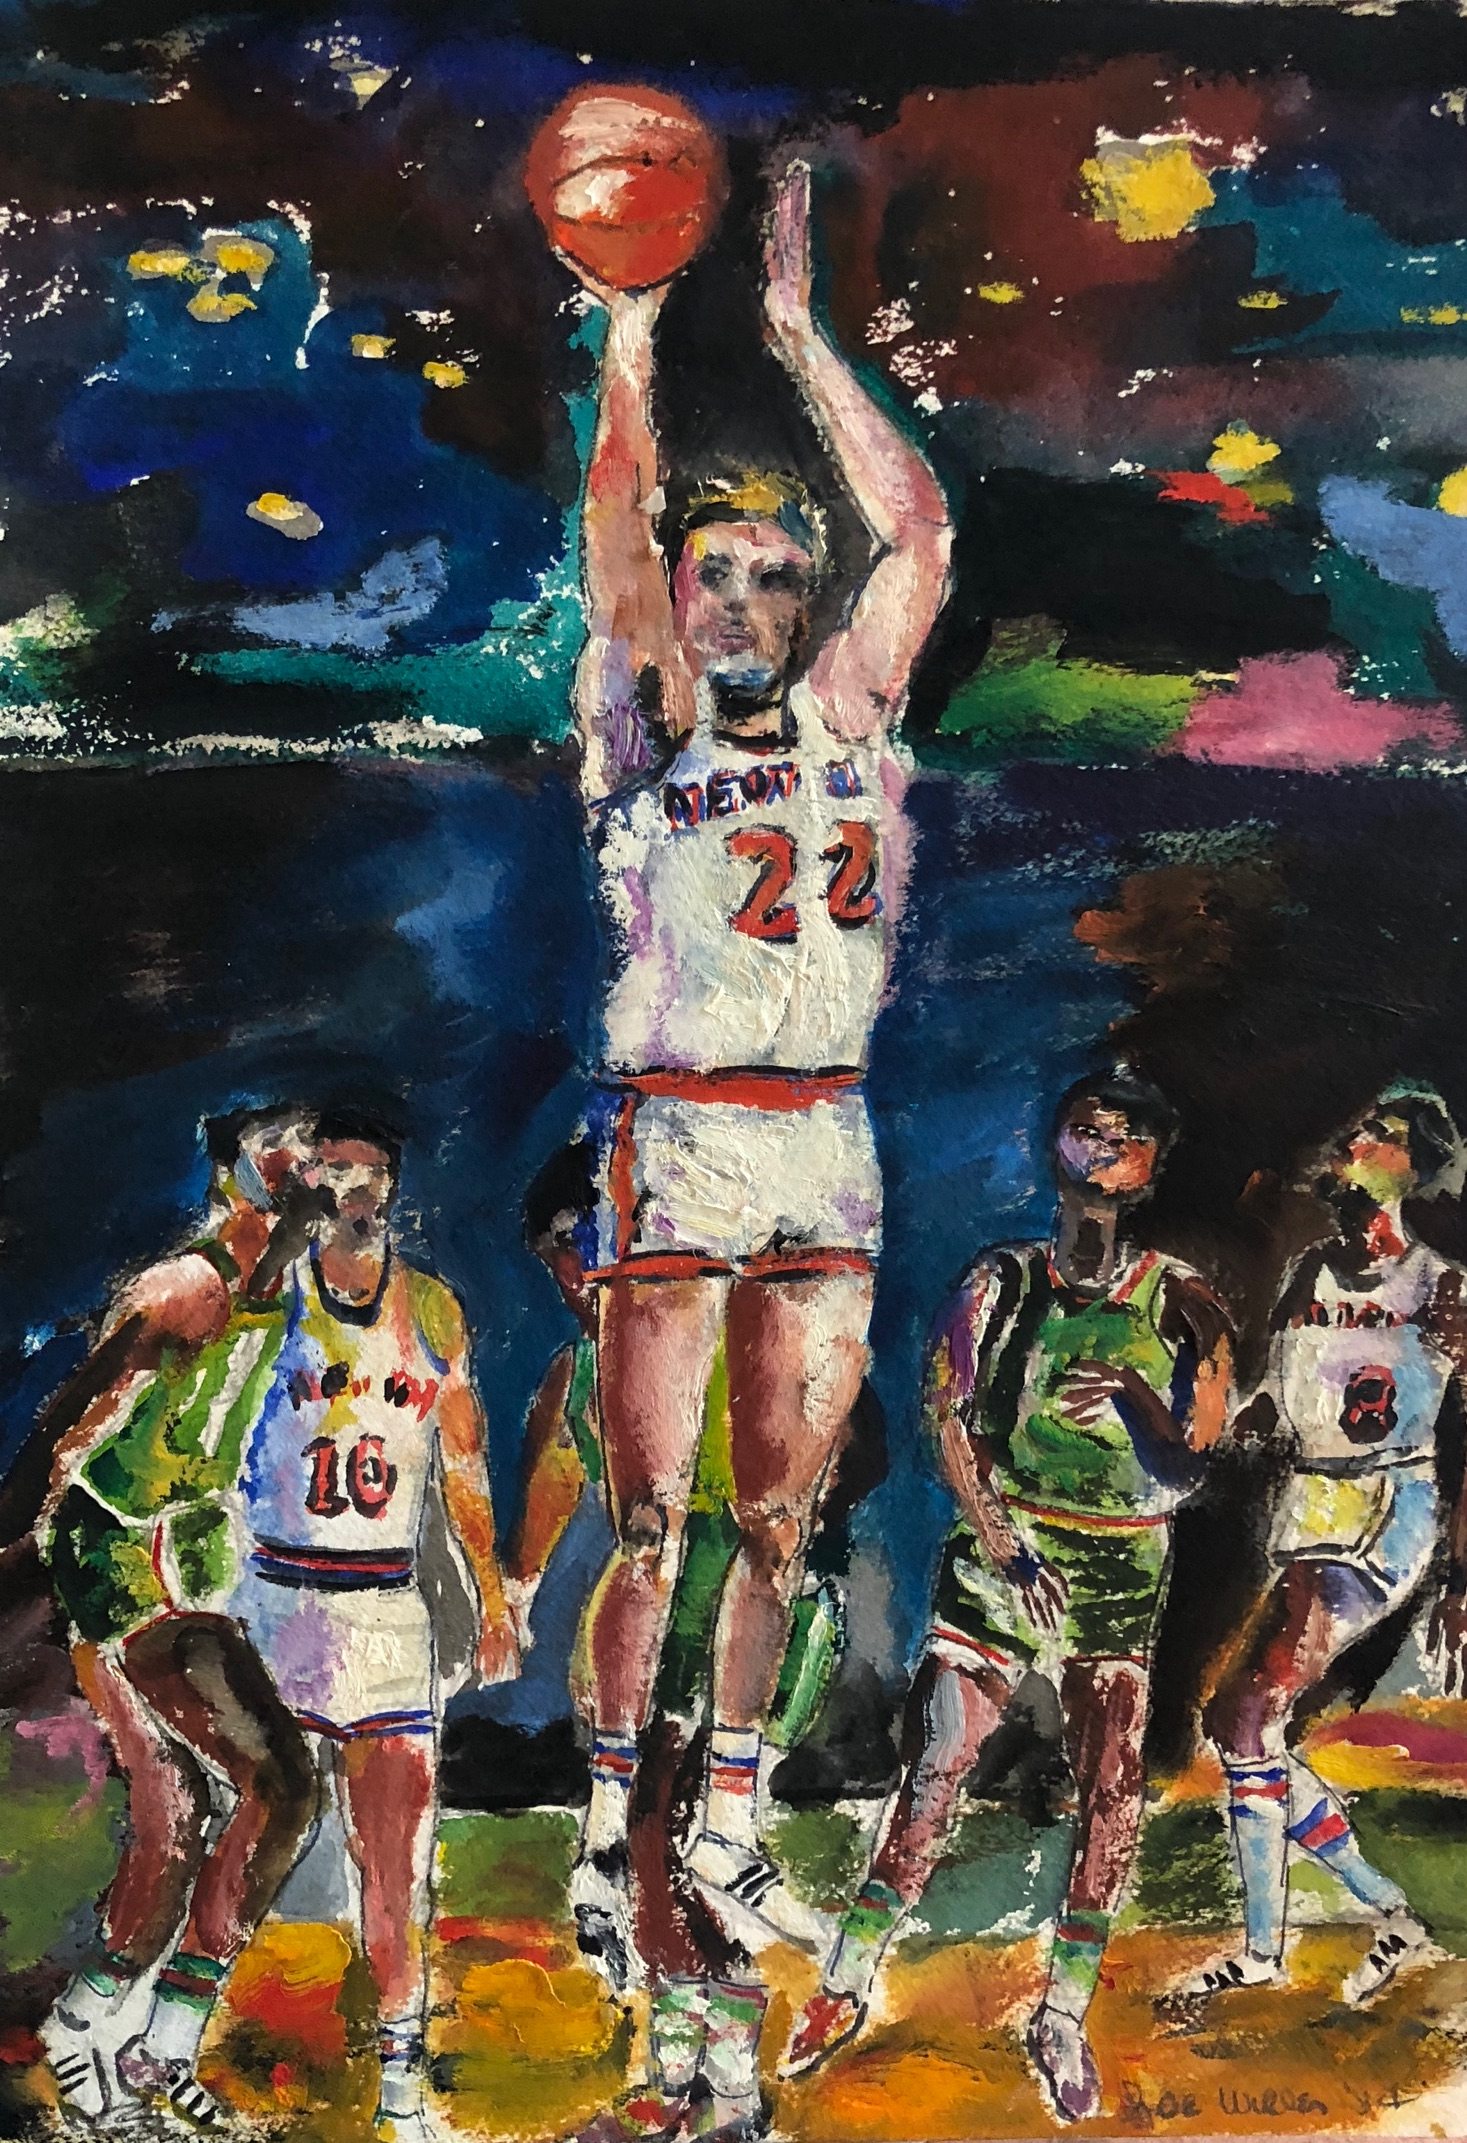 Athletes Paintings by Joe Wilder MD